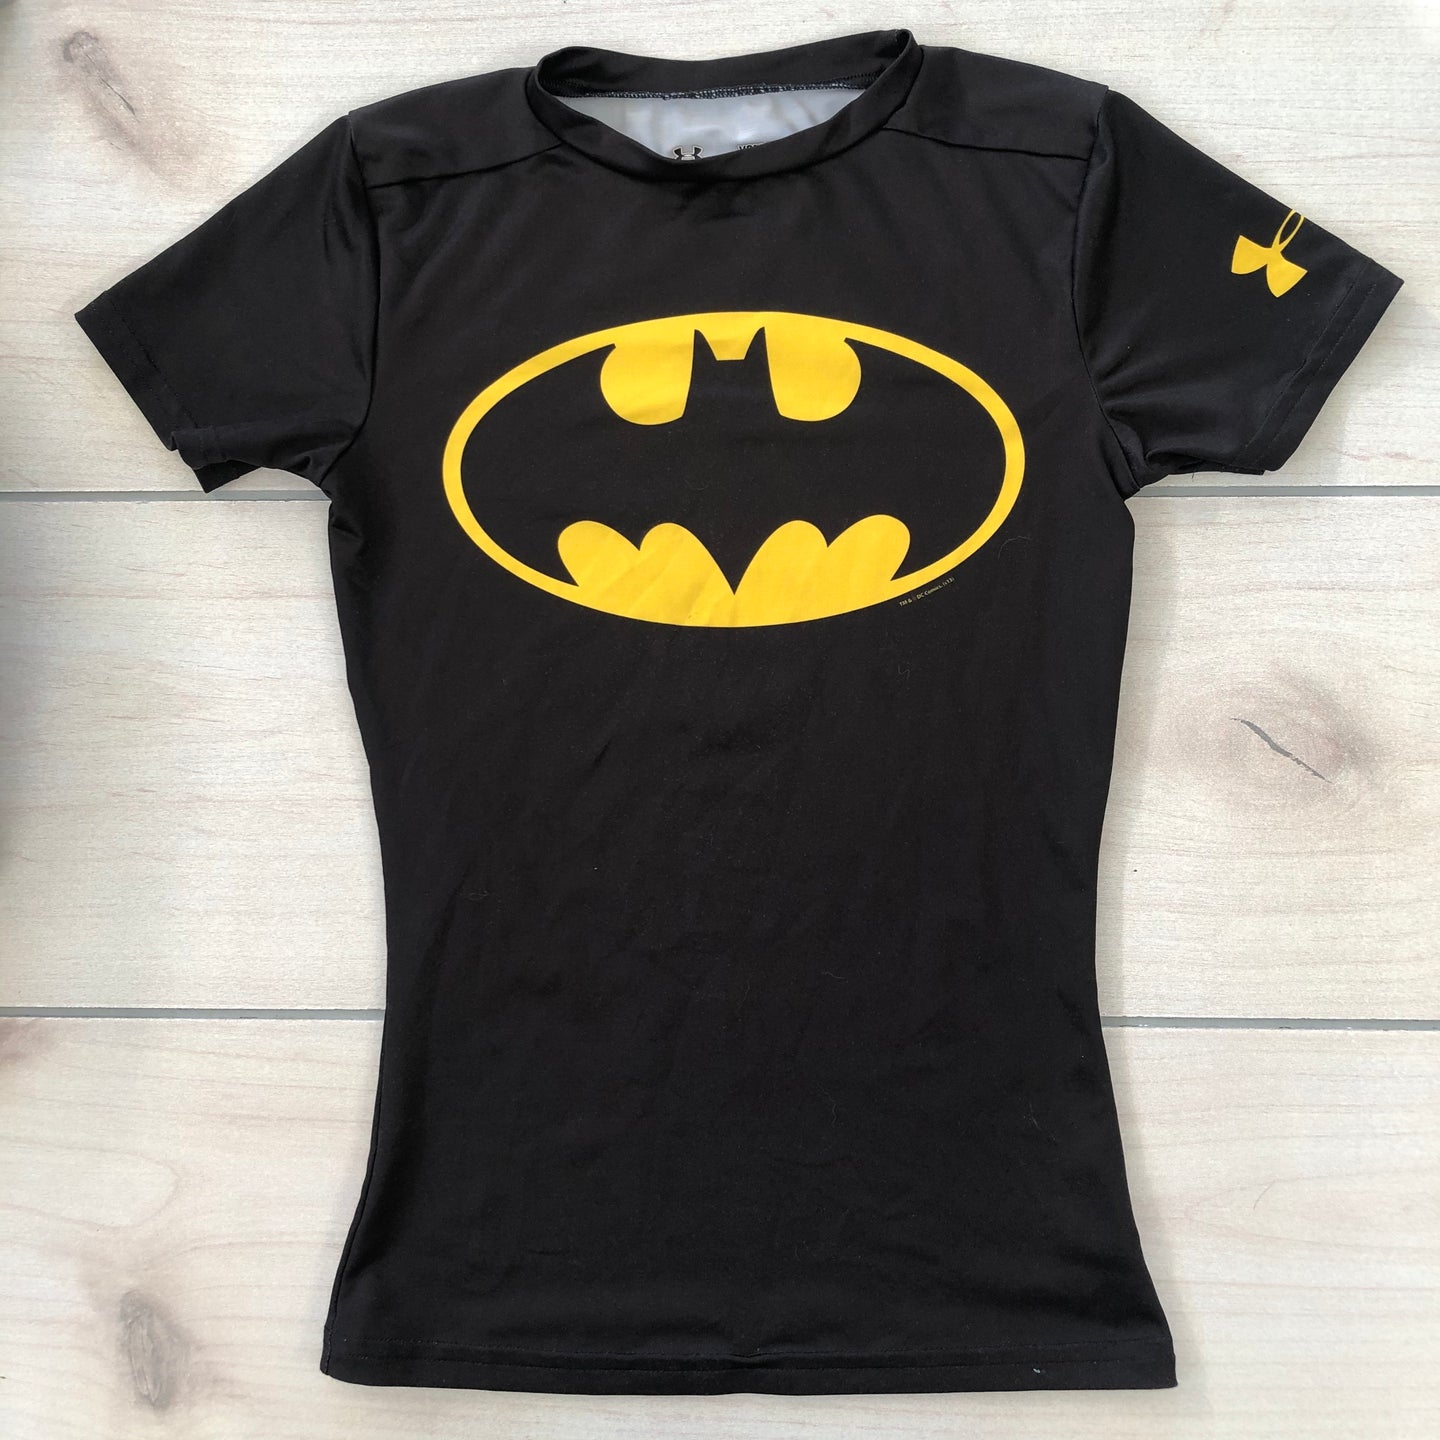 Under Armour Batman Performance T-Shirt YSM